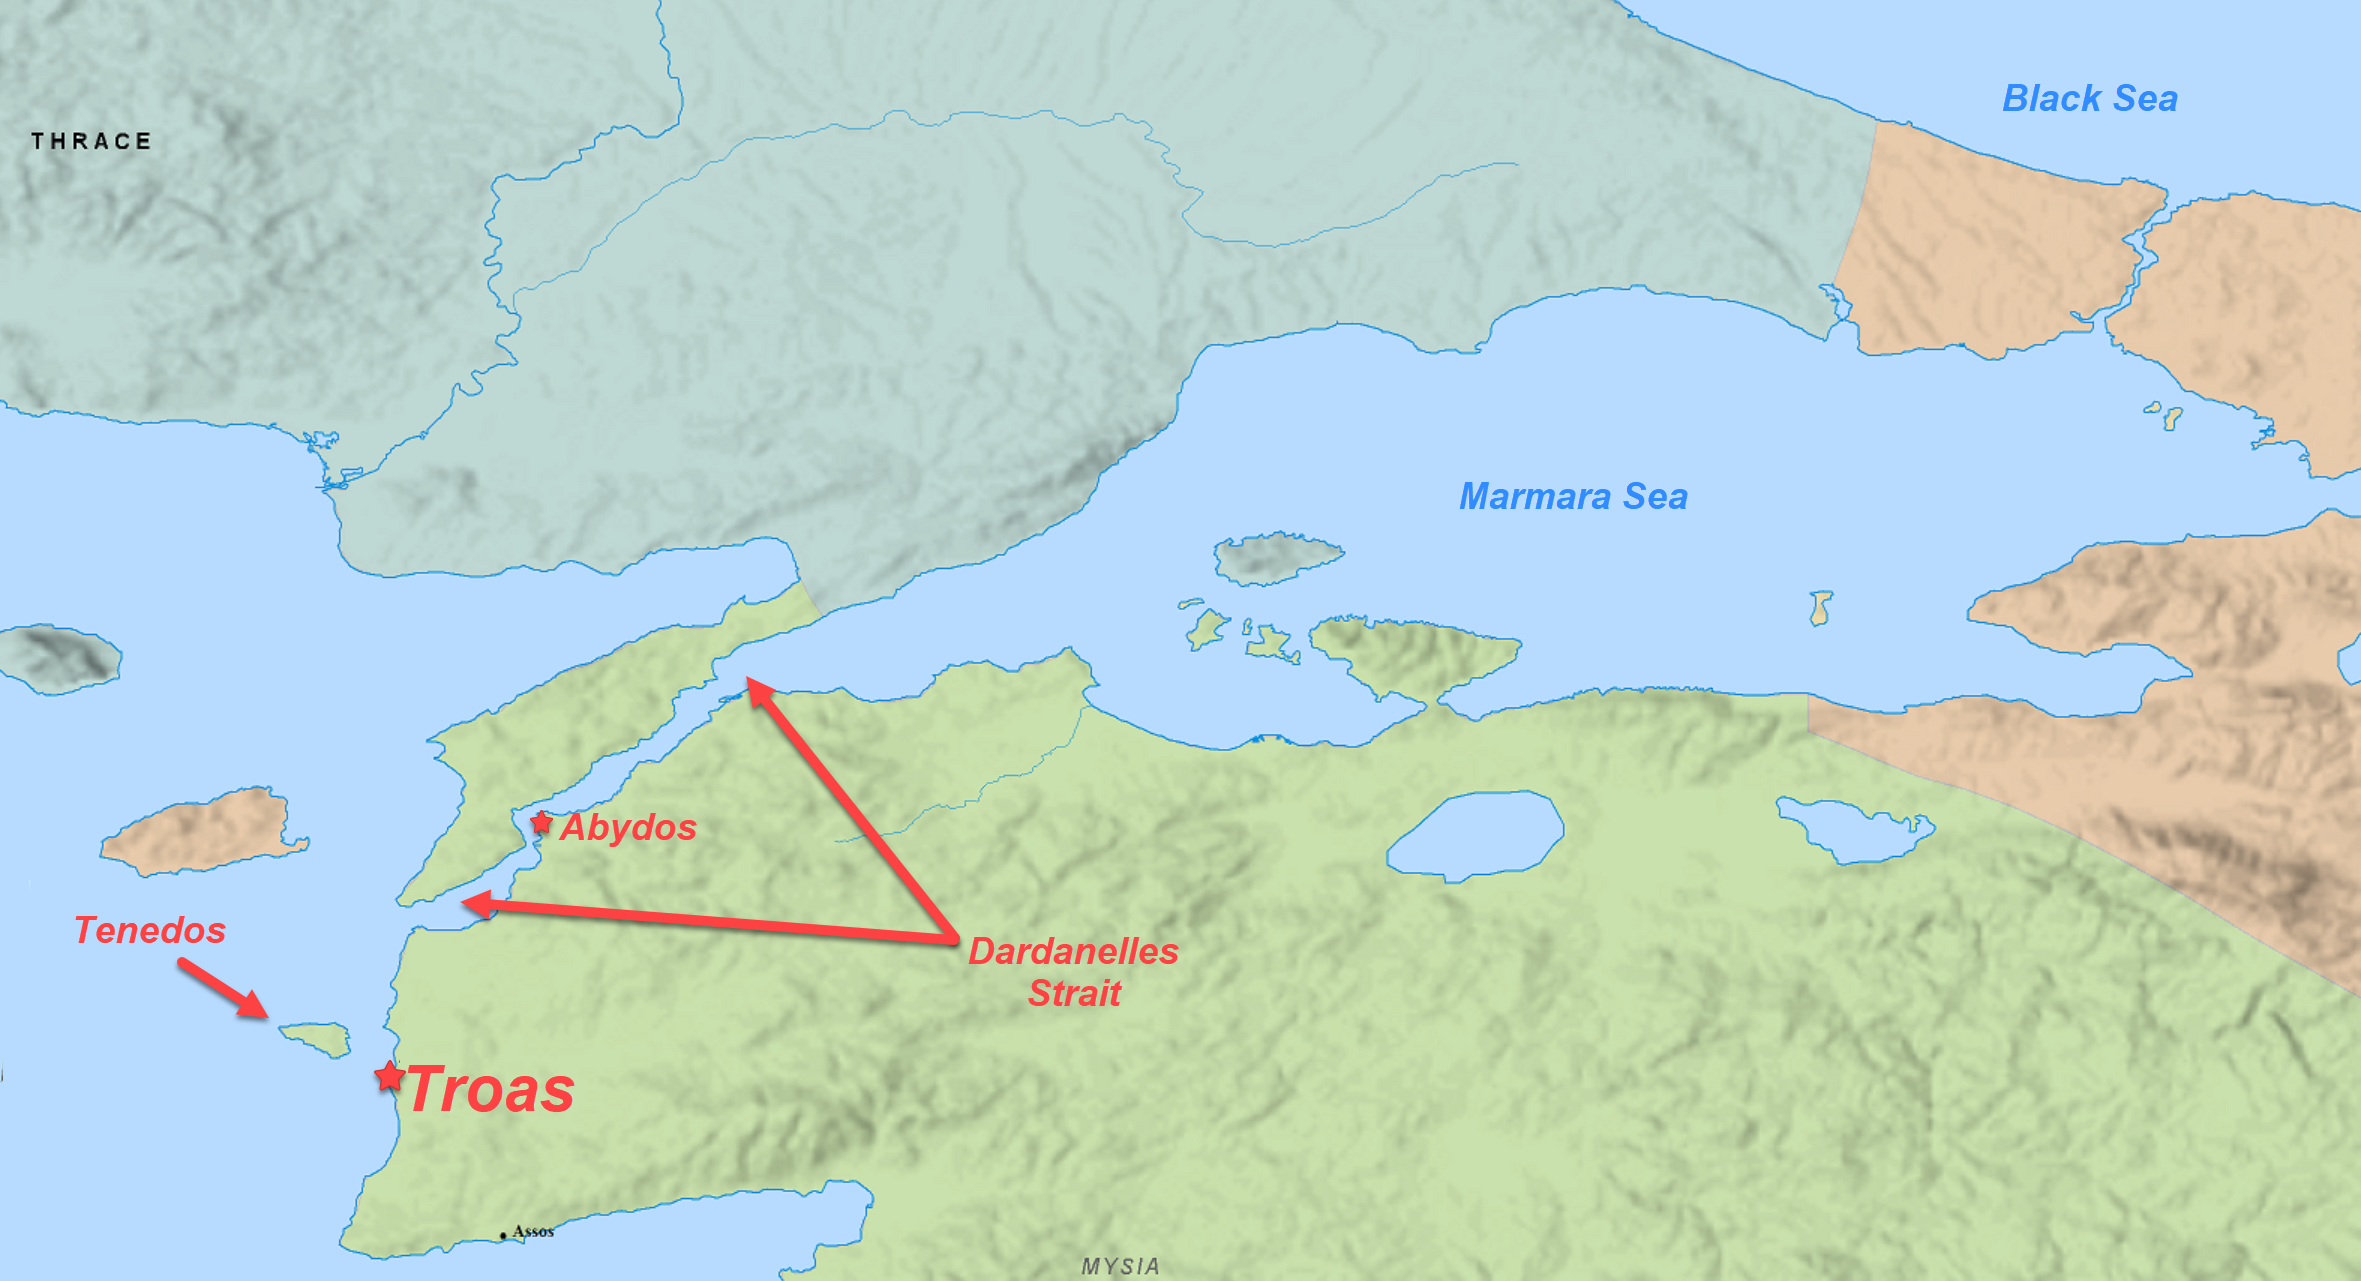 Dardanelles Strait, Tenedos, and Abydos